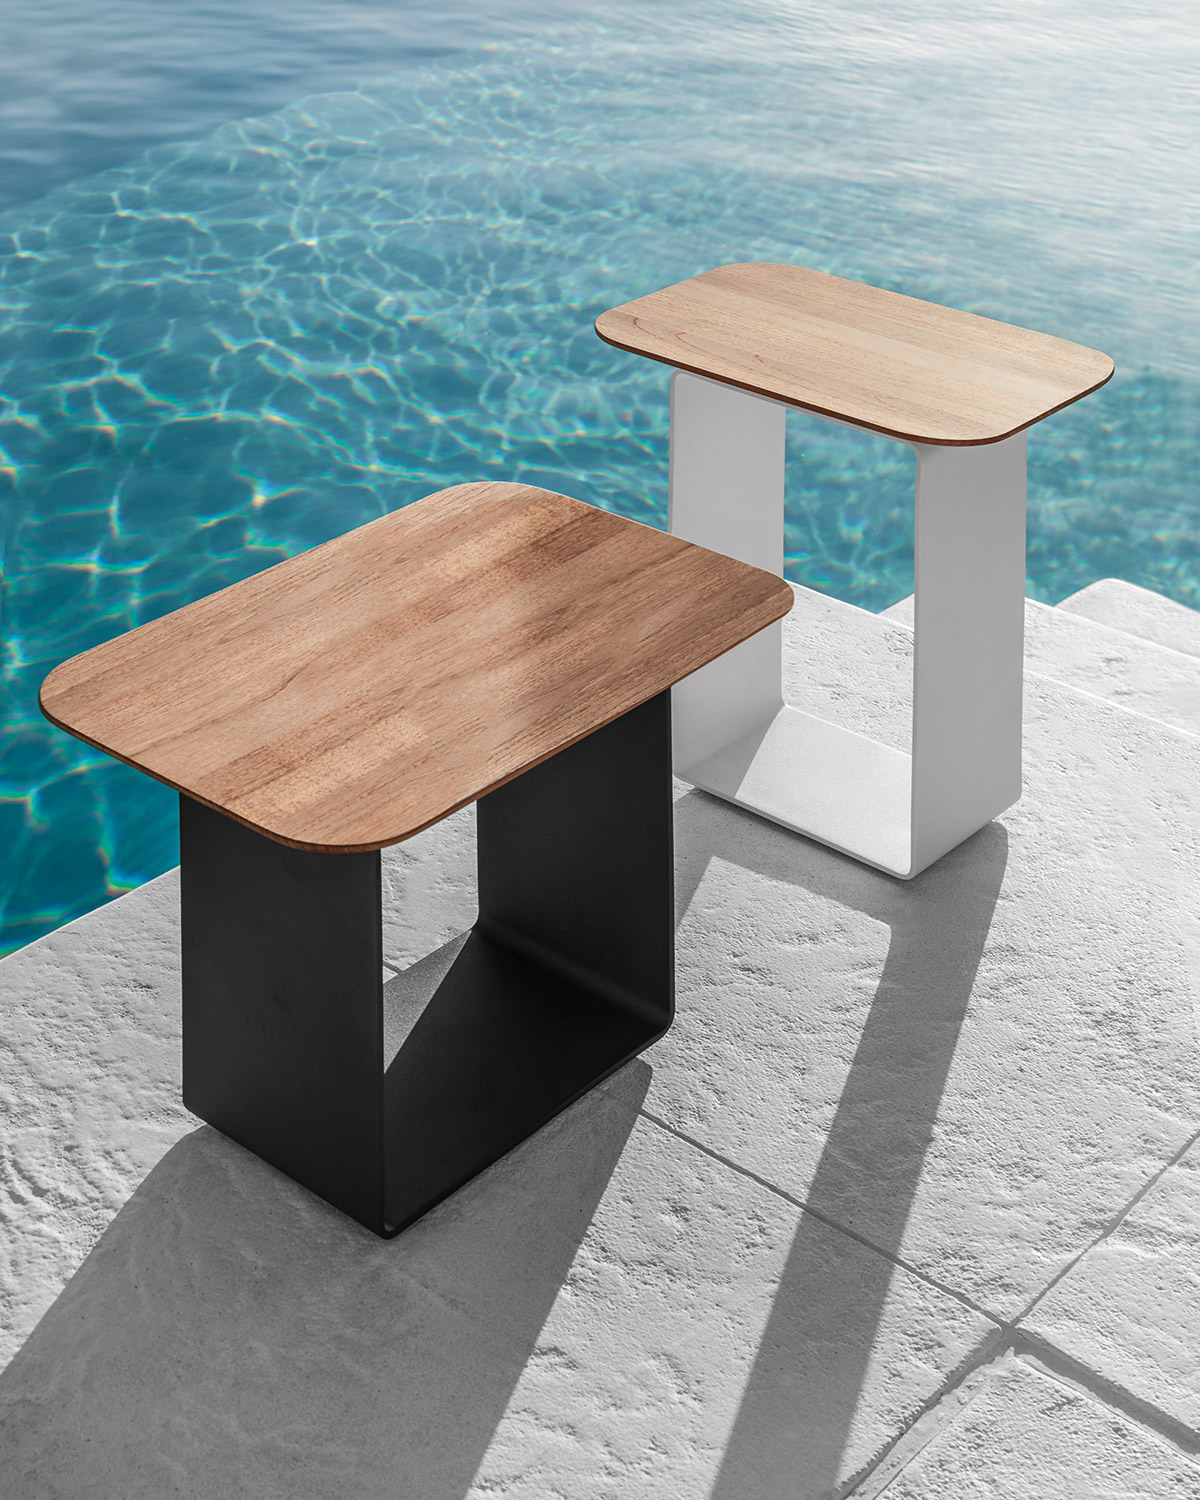 Clamp table by Gloster